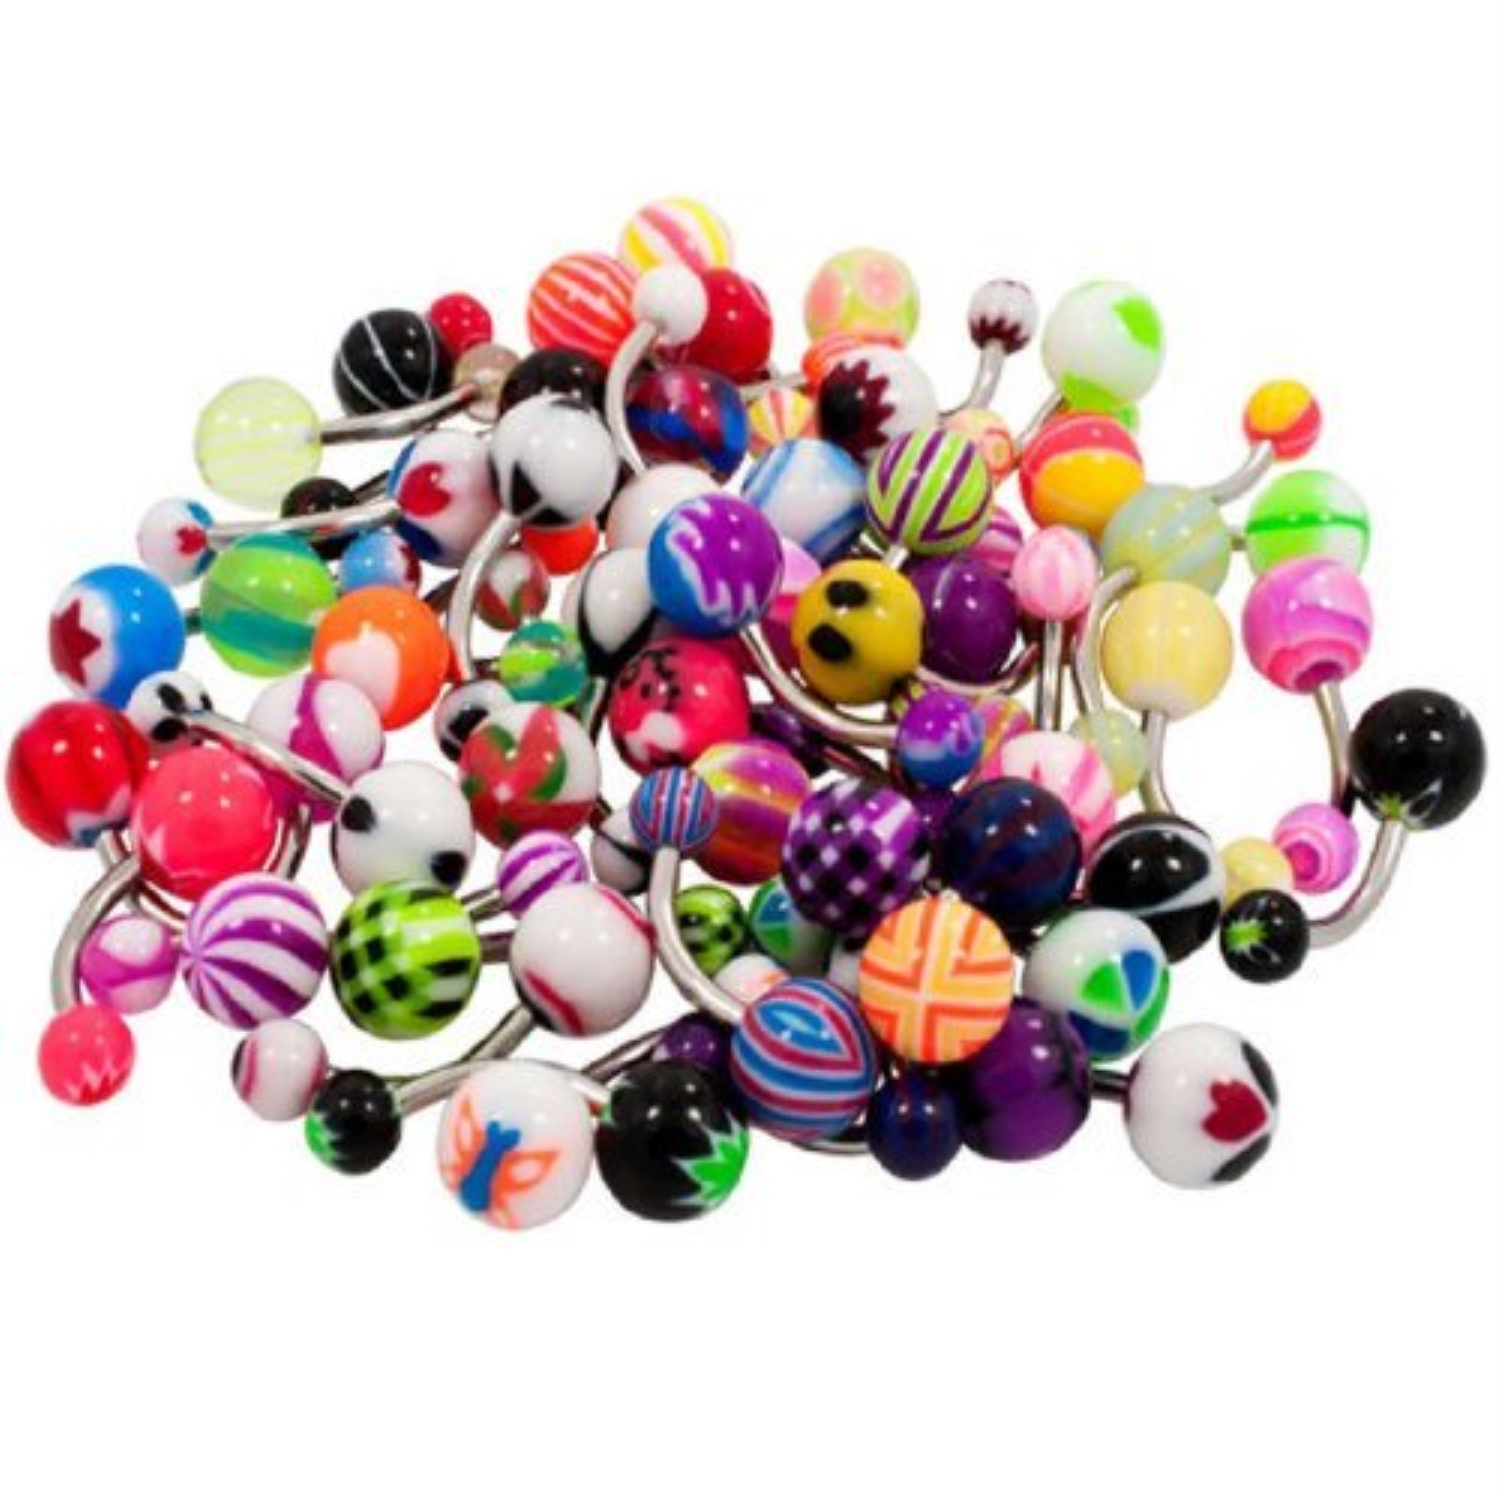 BodyJ4You® Belly Button Navel Rings Wholesale Lot of 50pcs Piercing Jewelry 14G